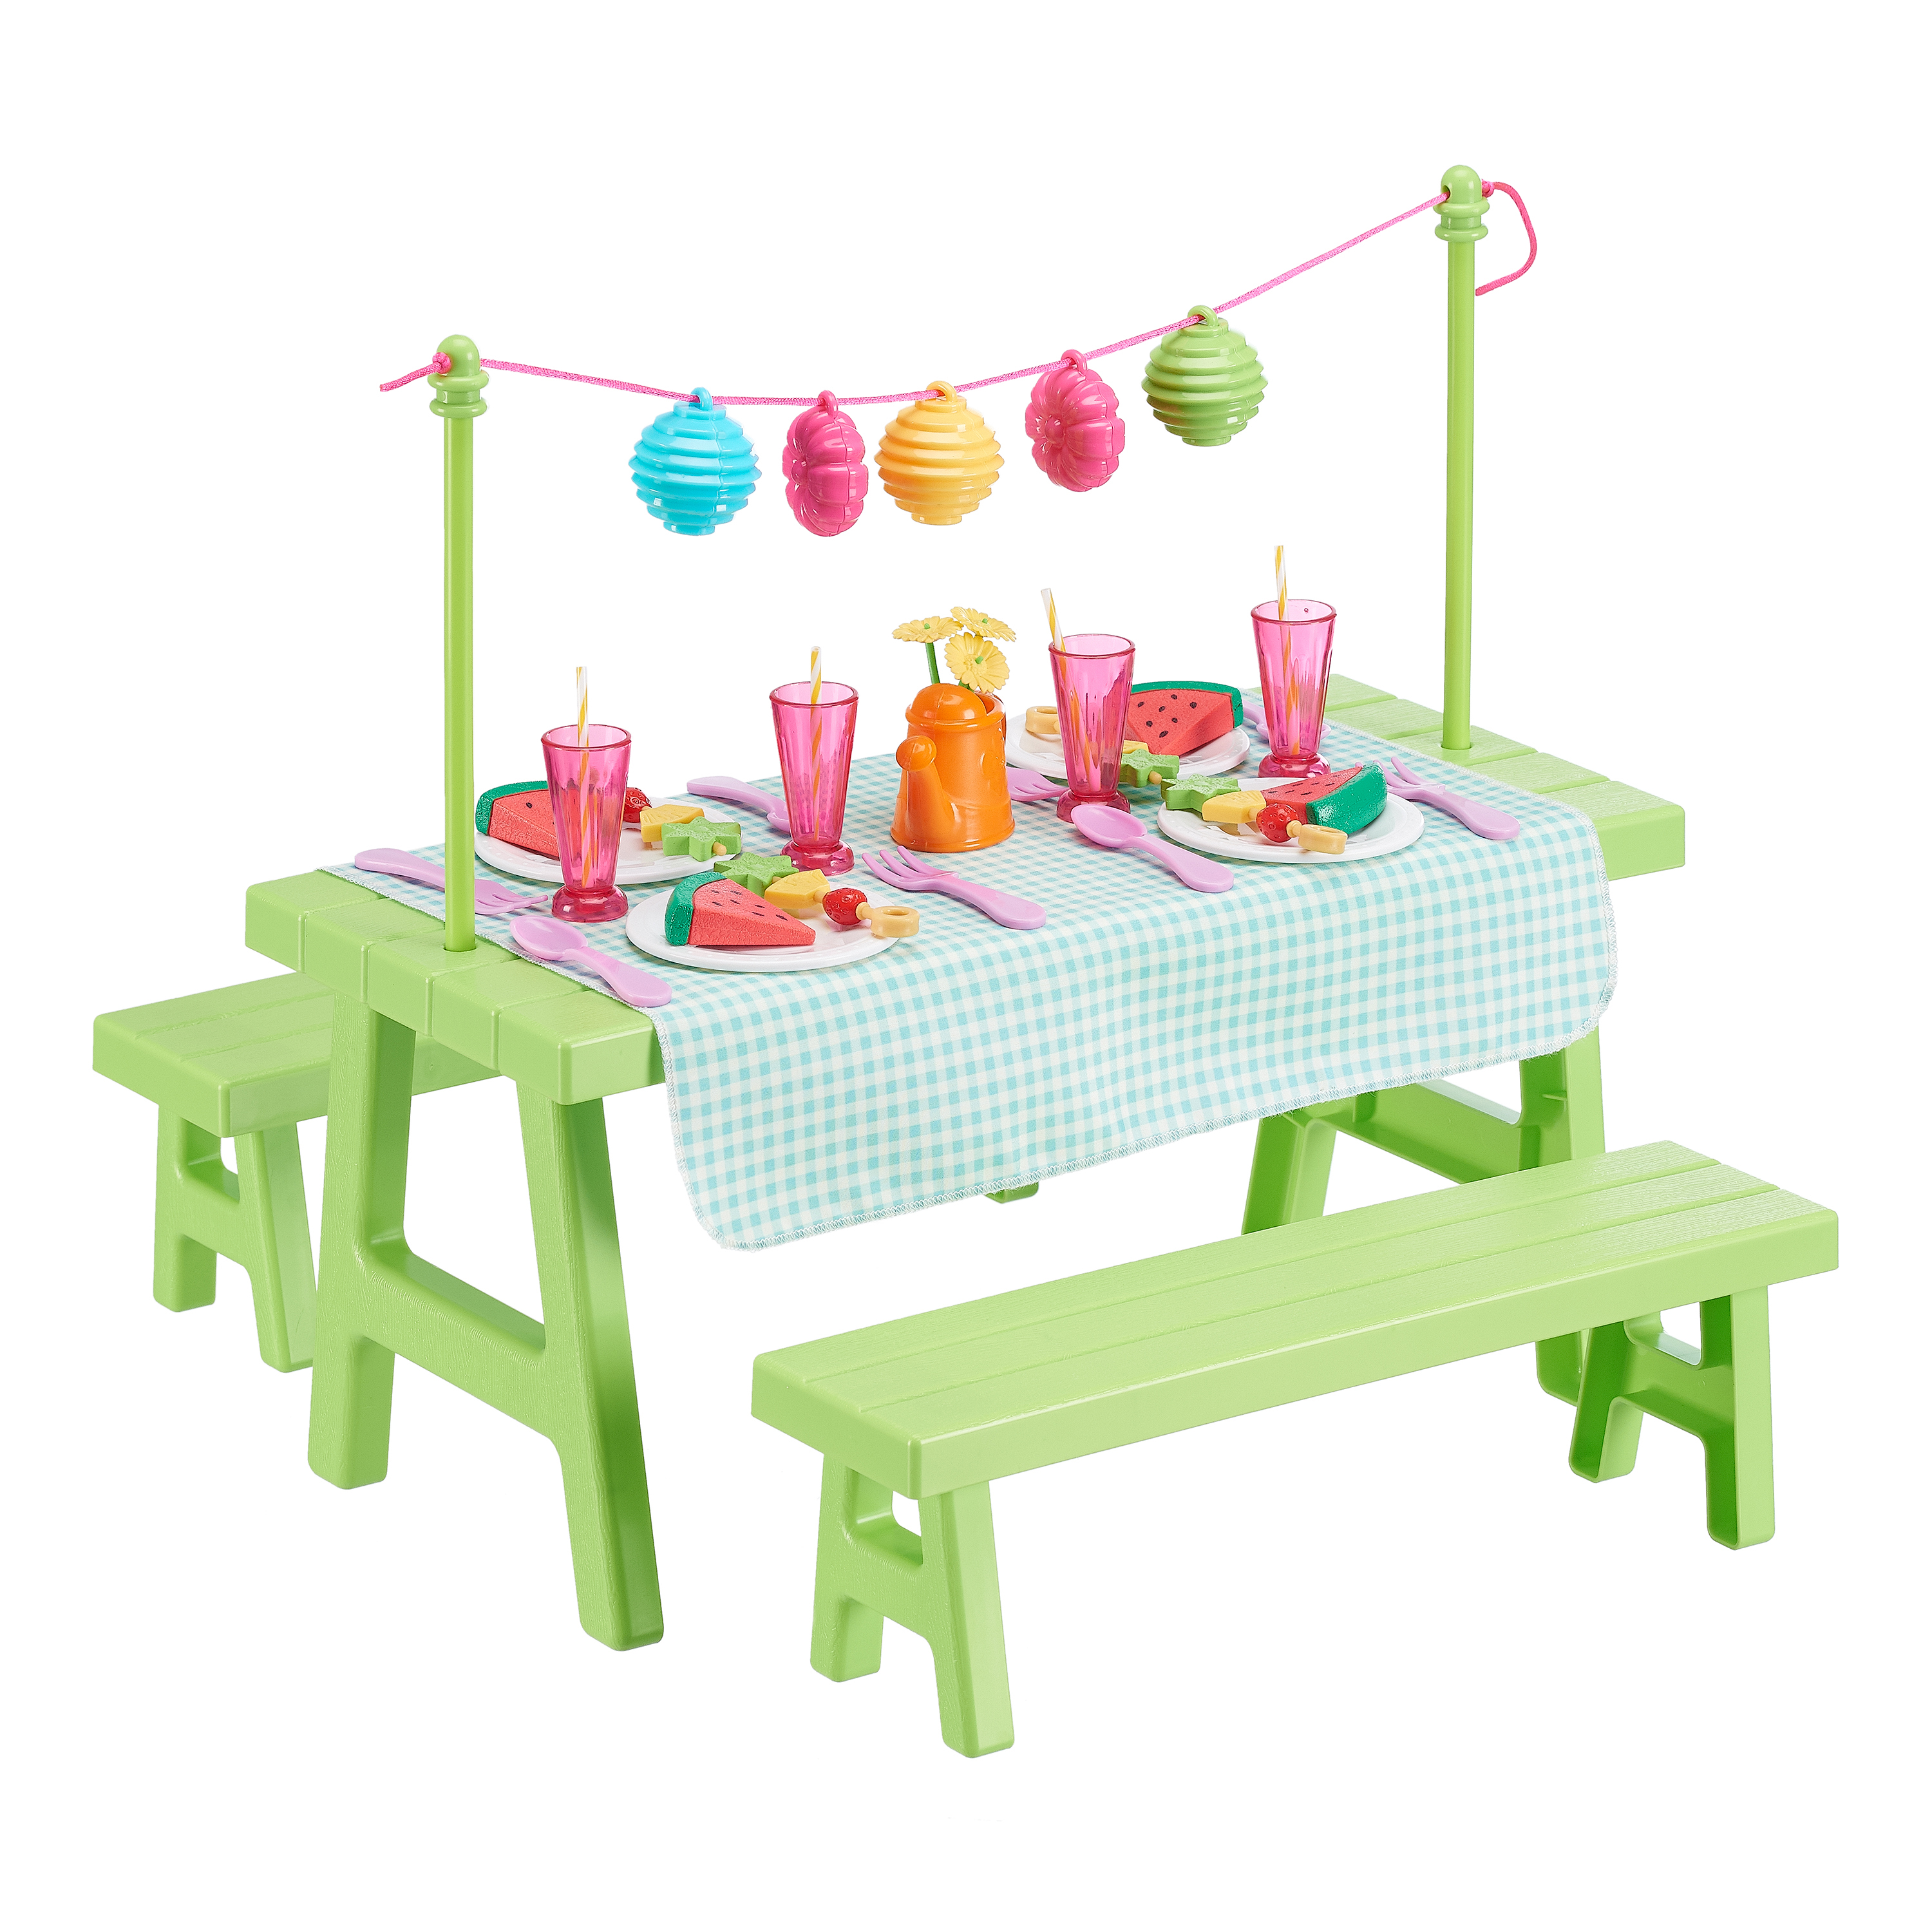 My Life As Picnic Table 47 Piece Accessory Set for 18-inch Dolls